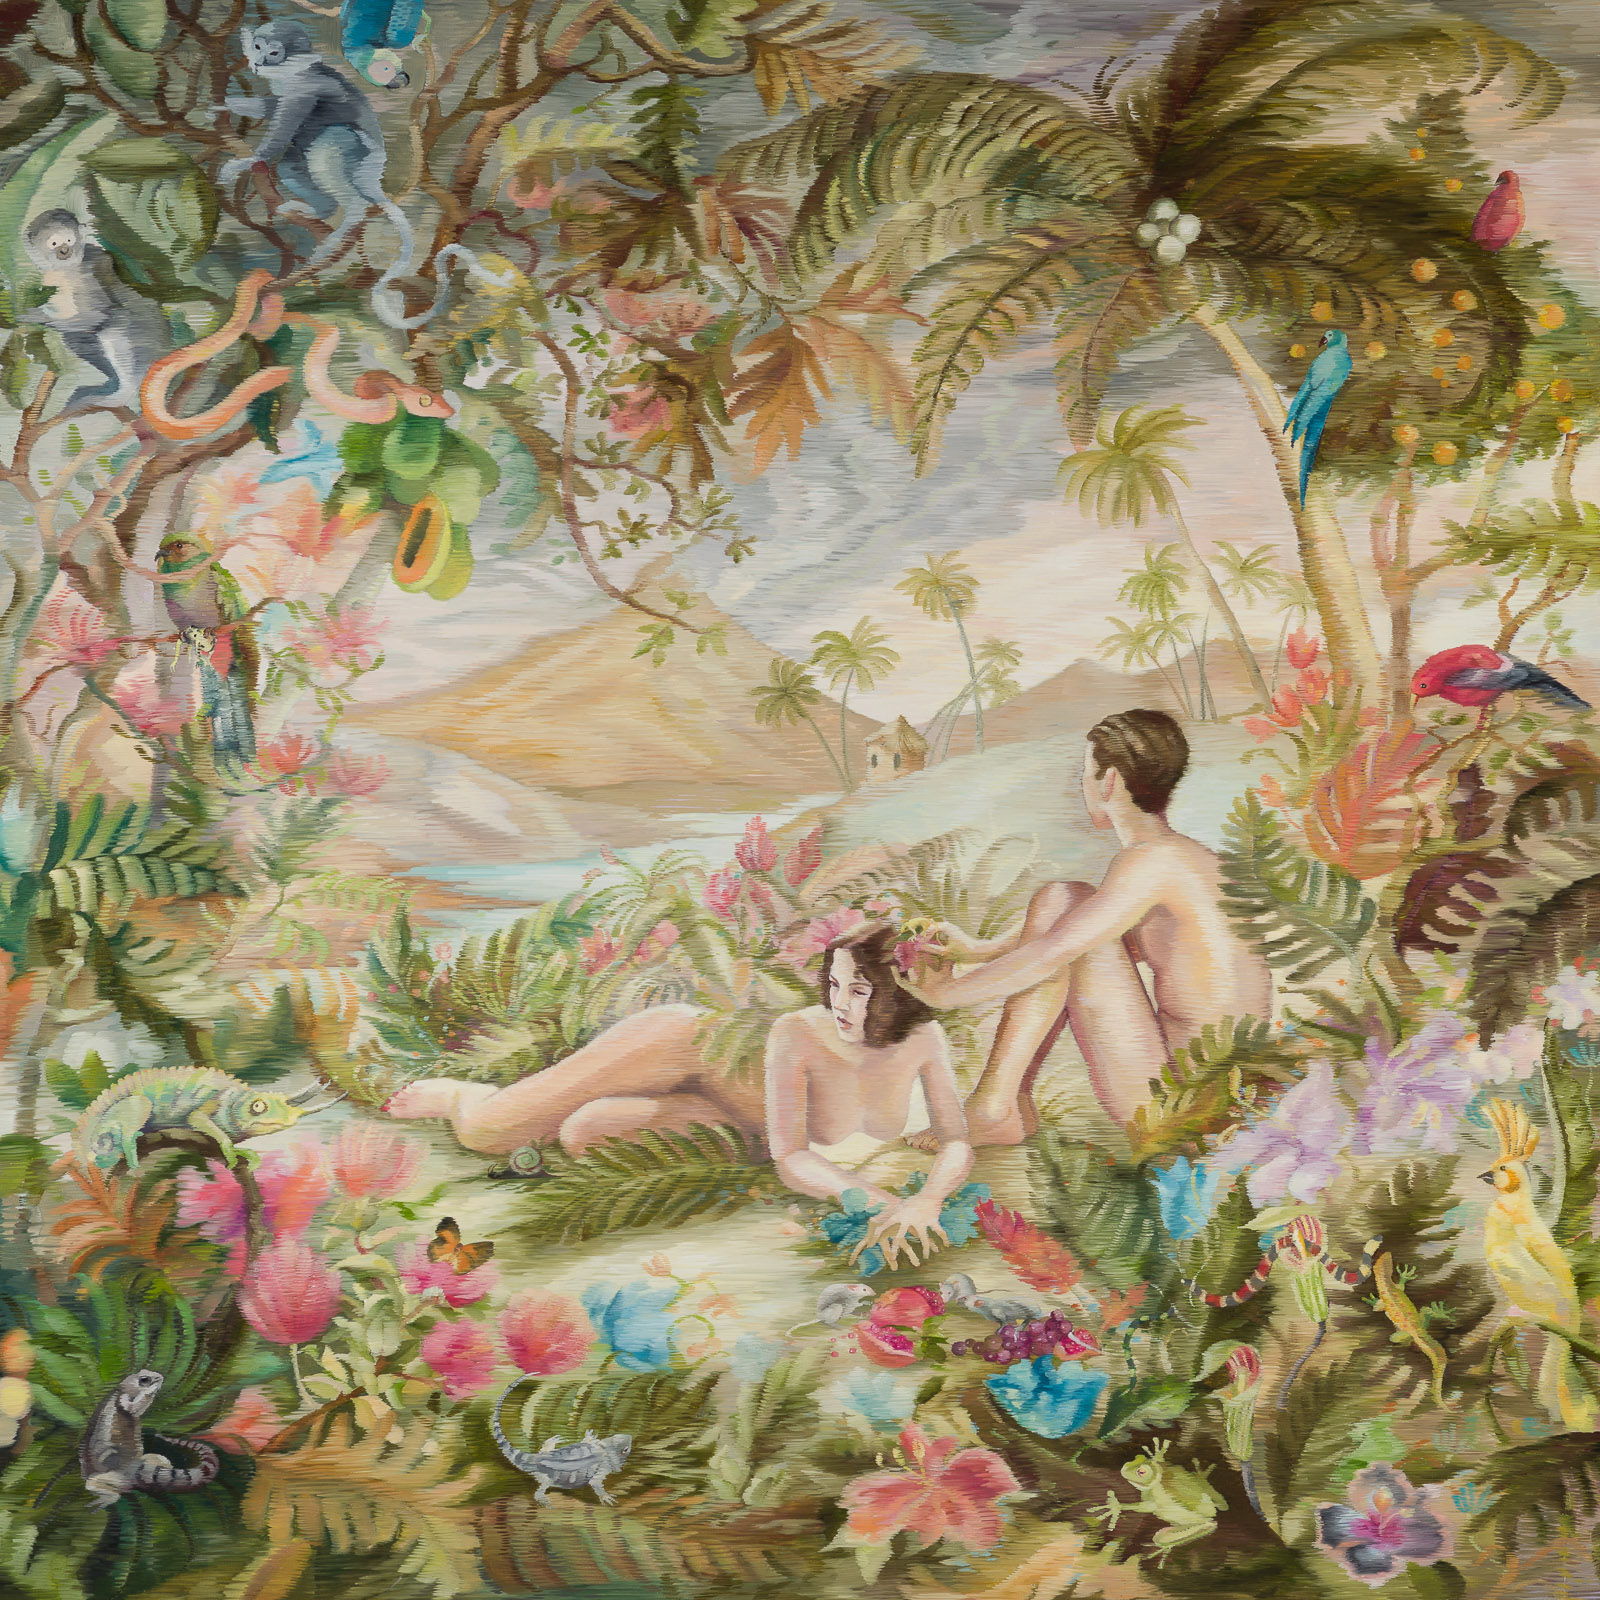 Grace OConnor, Honeymoon in Hawaii (Until we Dissolve), 2020. Oil on canvas, 122 x 122cm. Courtesy of Candida Stevens Gallery.